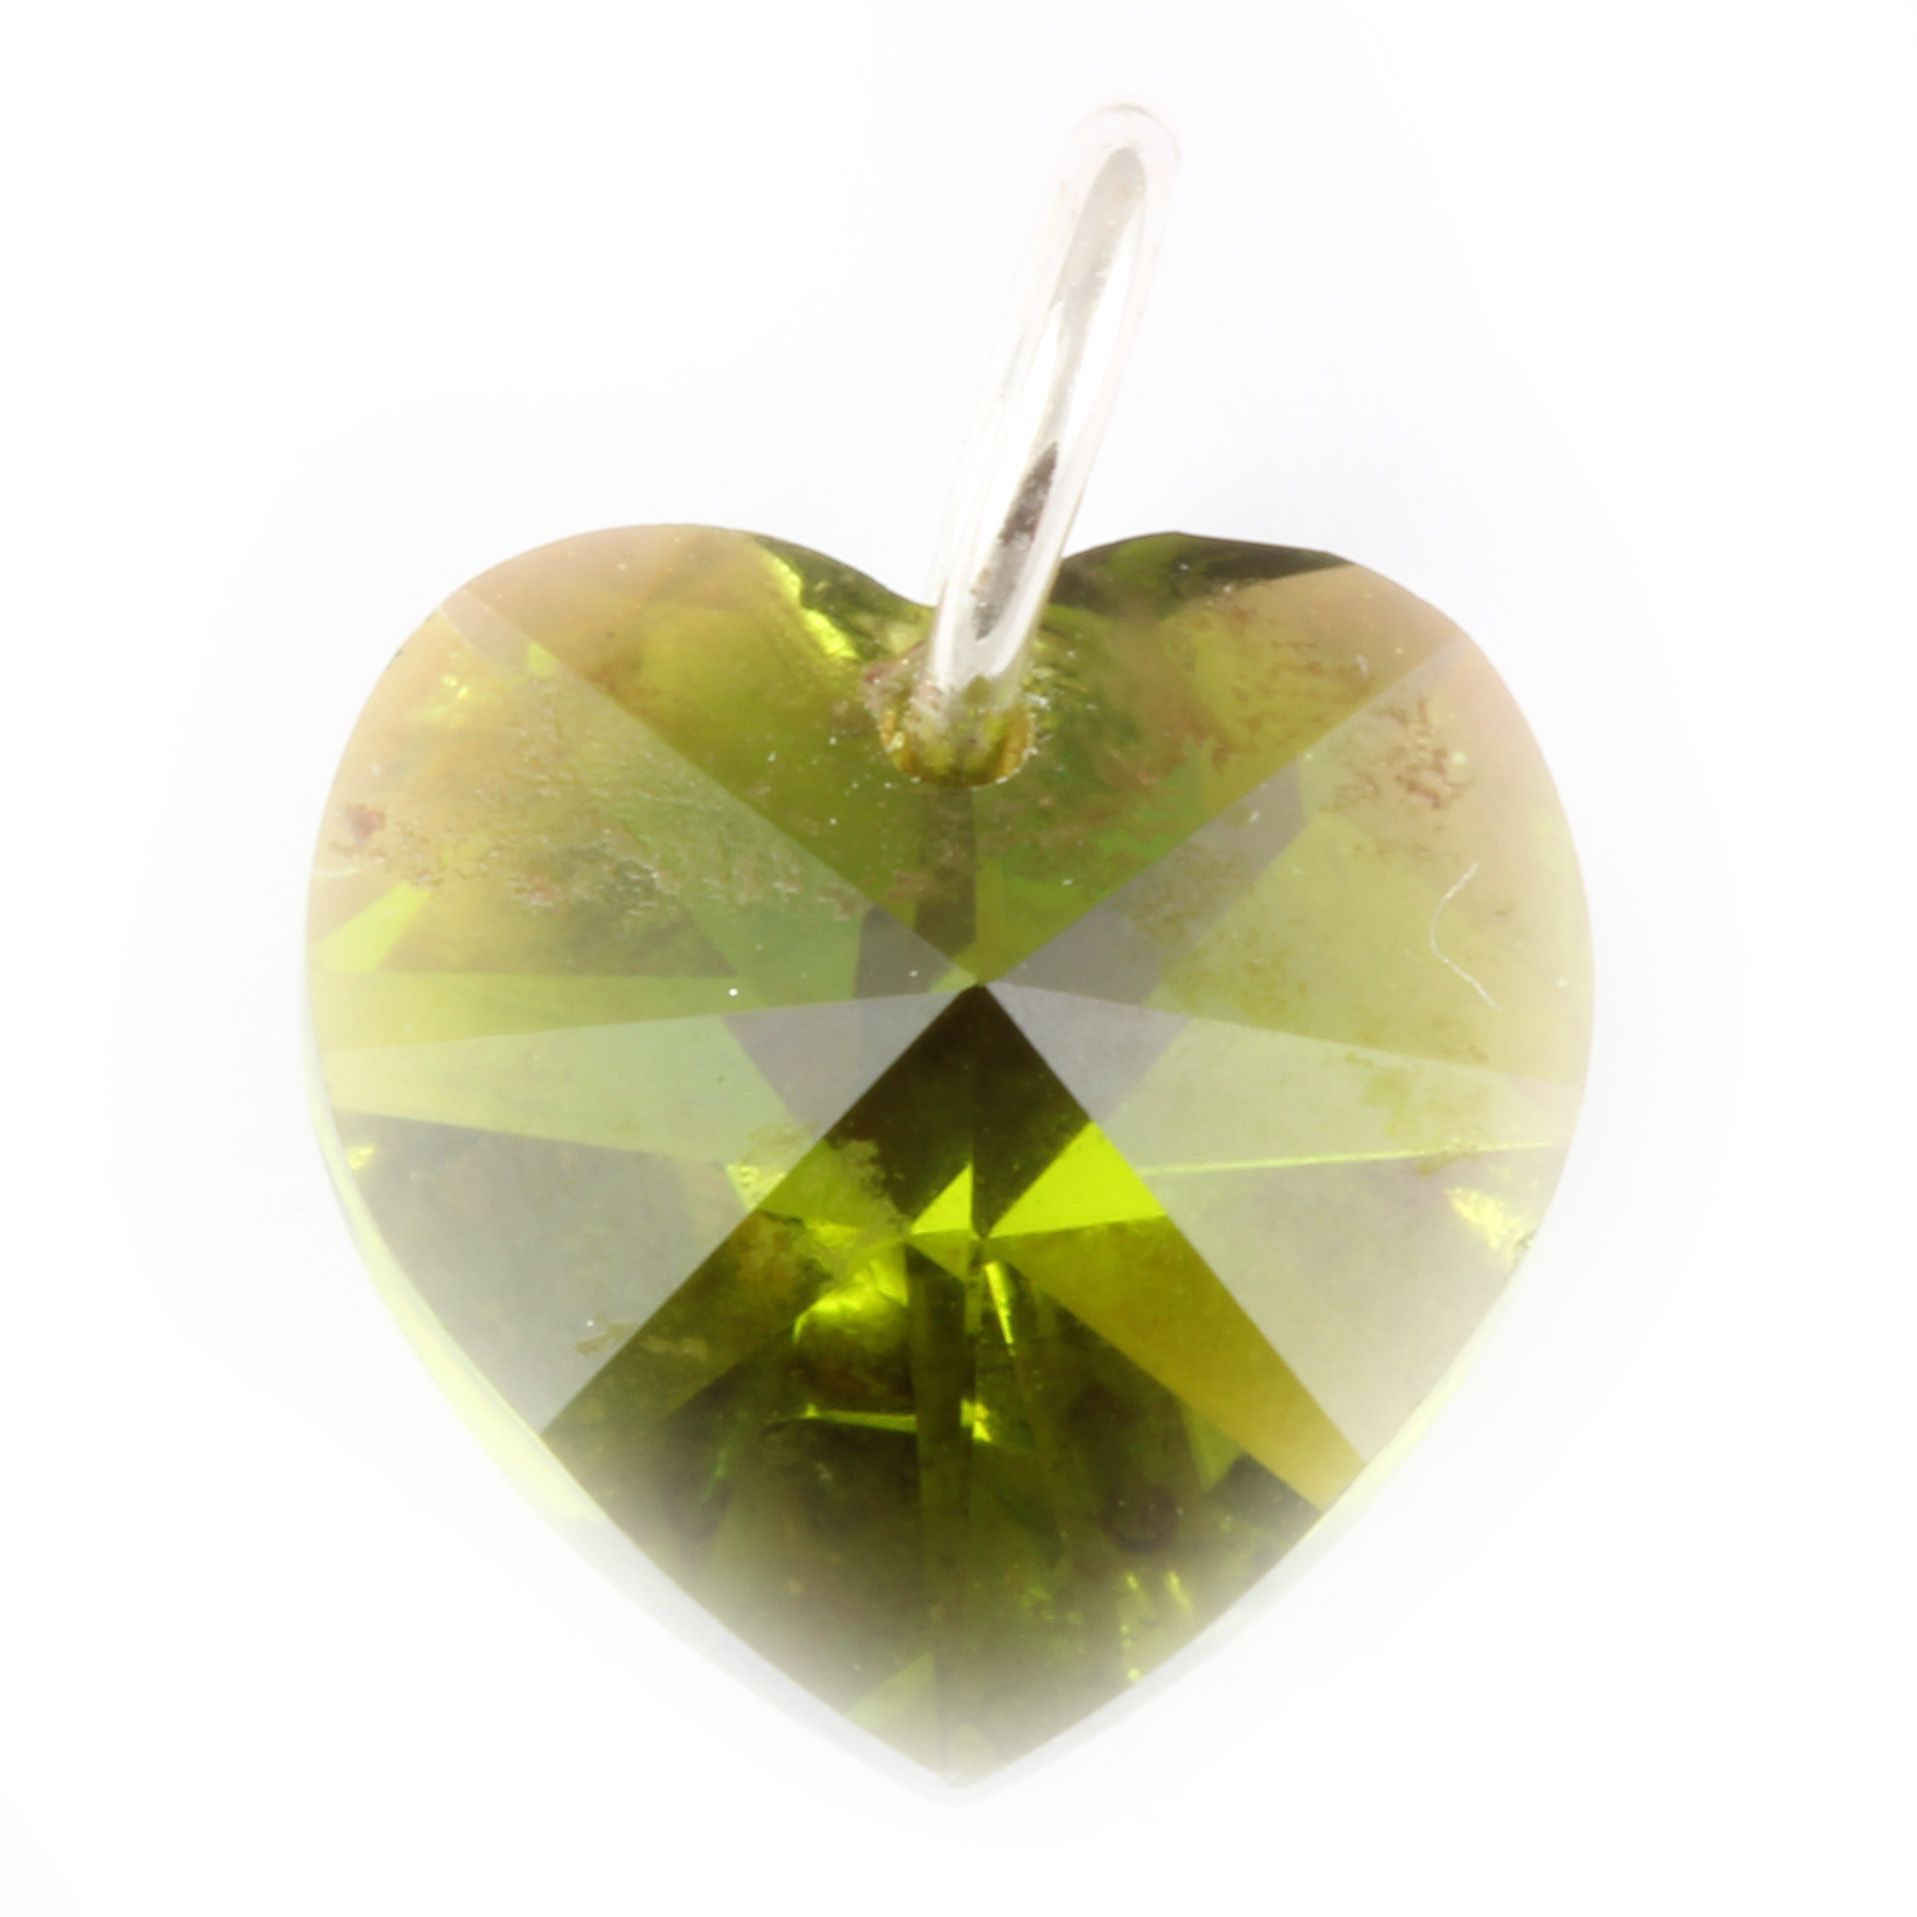 by nowak education olivine presentation gemstone kaitlyn